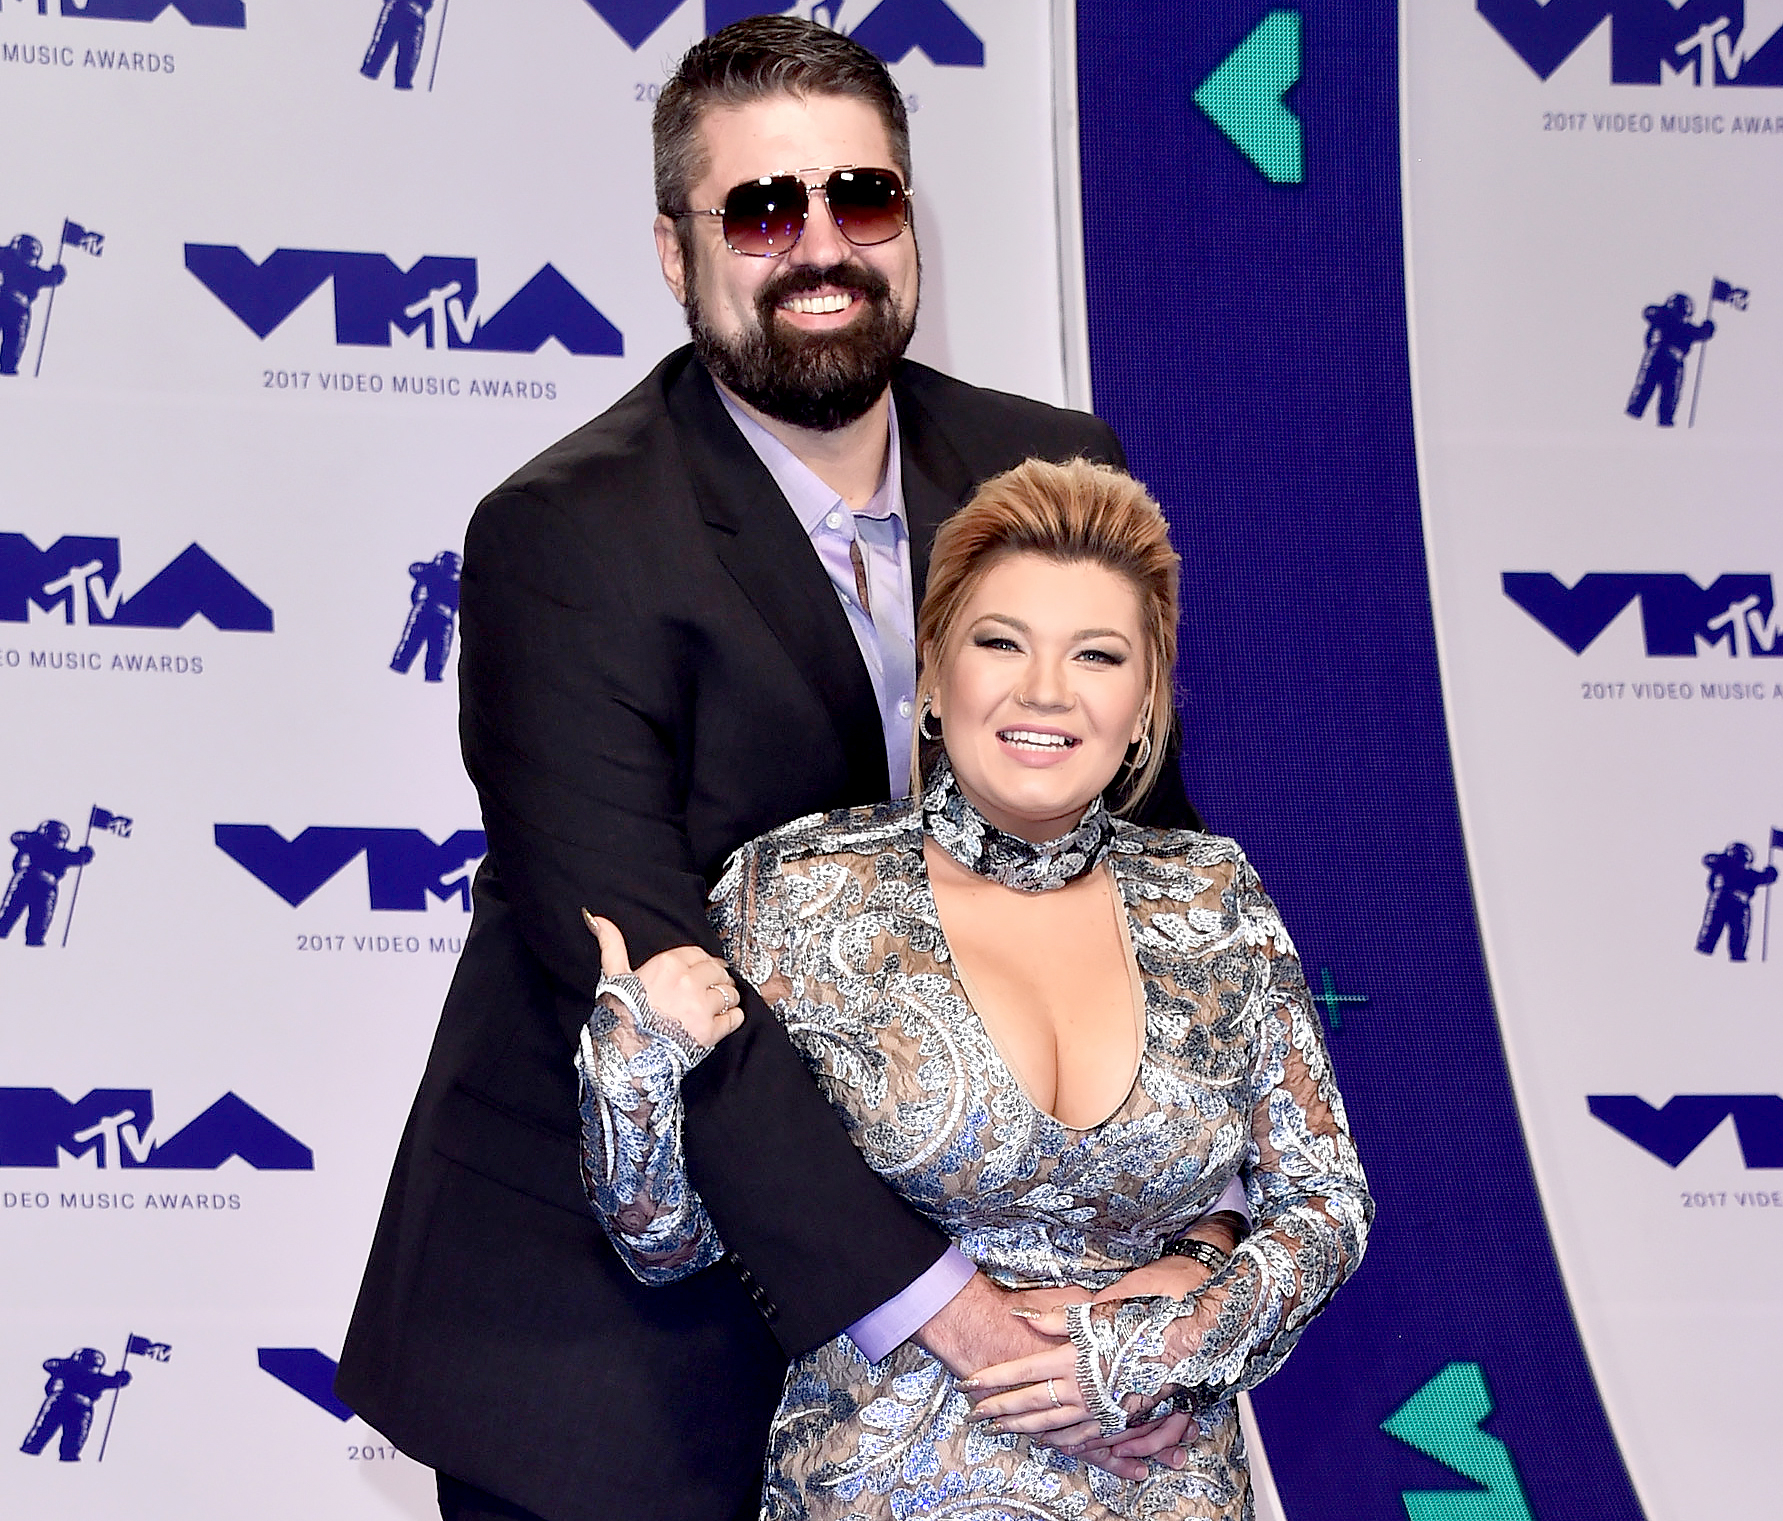 Andrew Glennon (L) and Amber Portwood attend the 2017 MTV Video Music Awards at The Forum on August 27, 2017 in Inglewood, California.